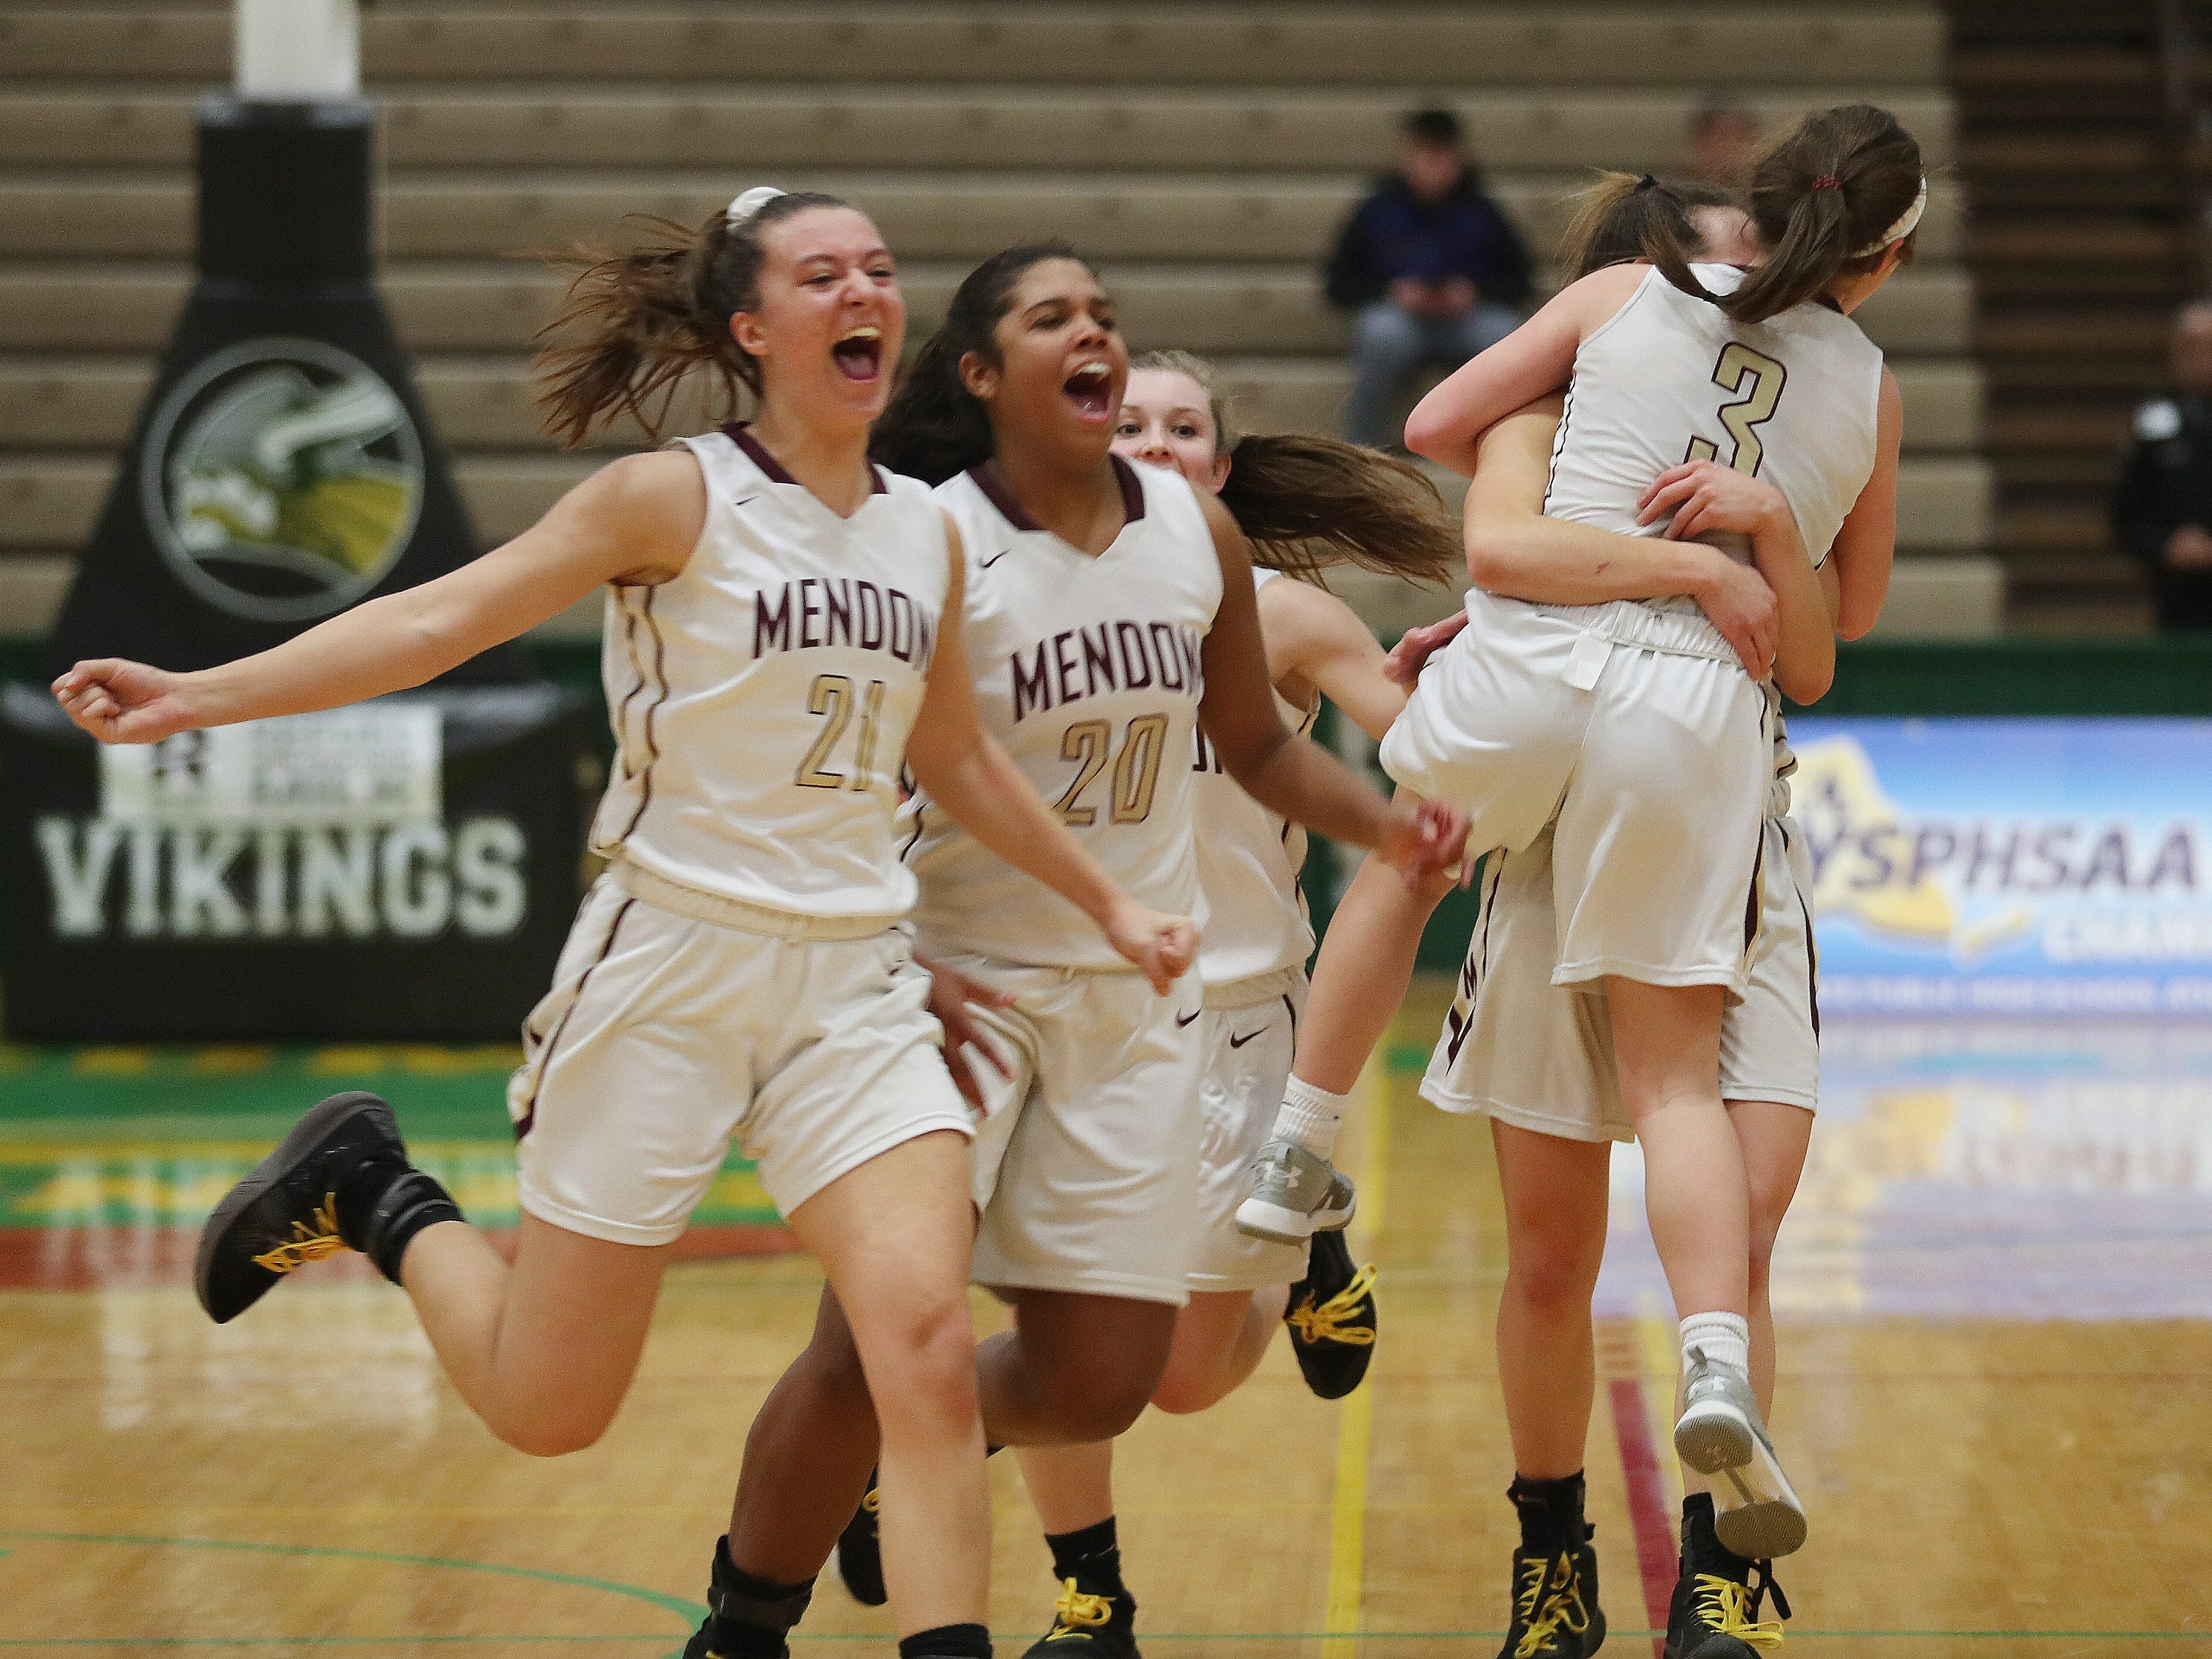 Pittsford Mendon players celebrate their victory over  Jamesville-DeWitt in the girls Class A state semifinal at Hudson Valley Community College in Troy March 16, 2019. Mendon won 44-32 and plays Seton Catholic Central in the final.